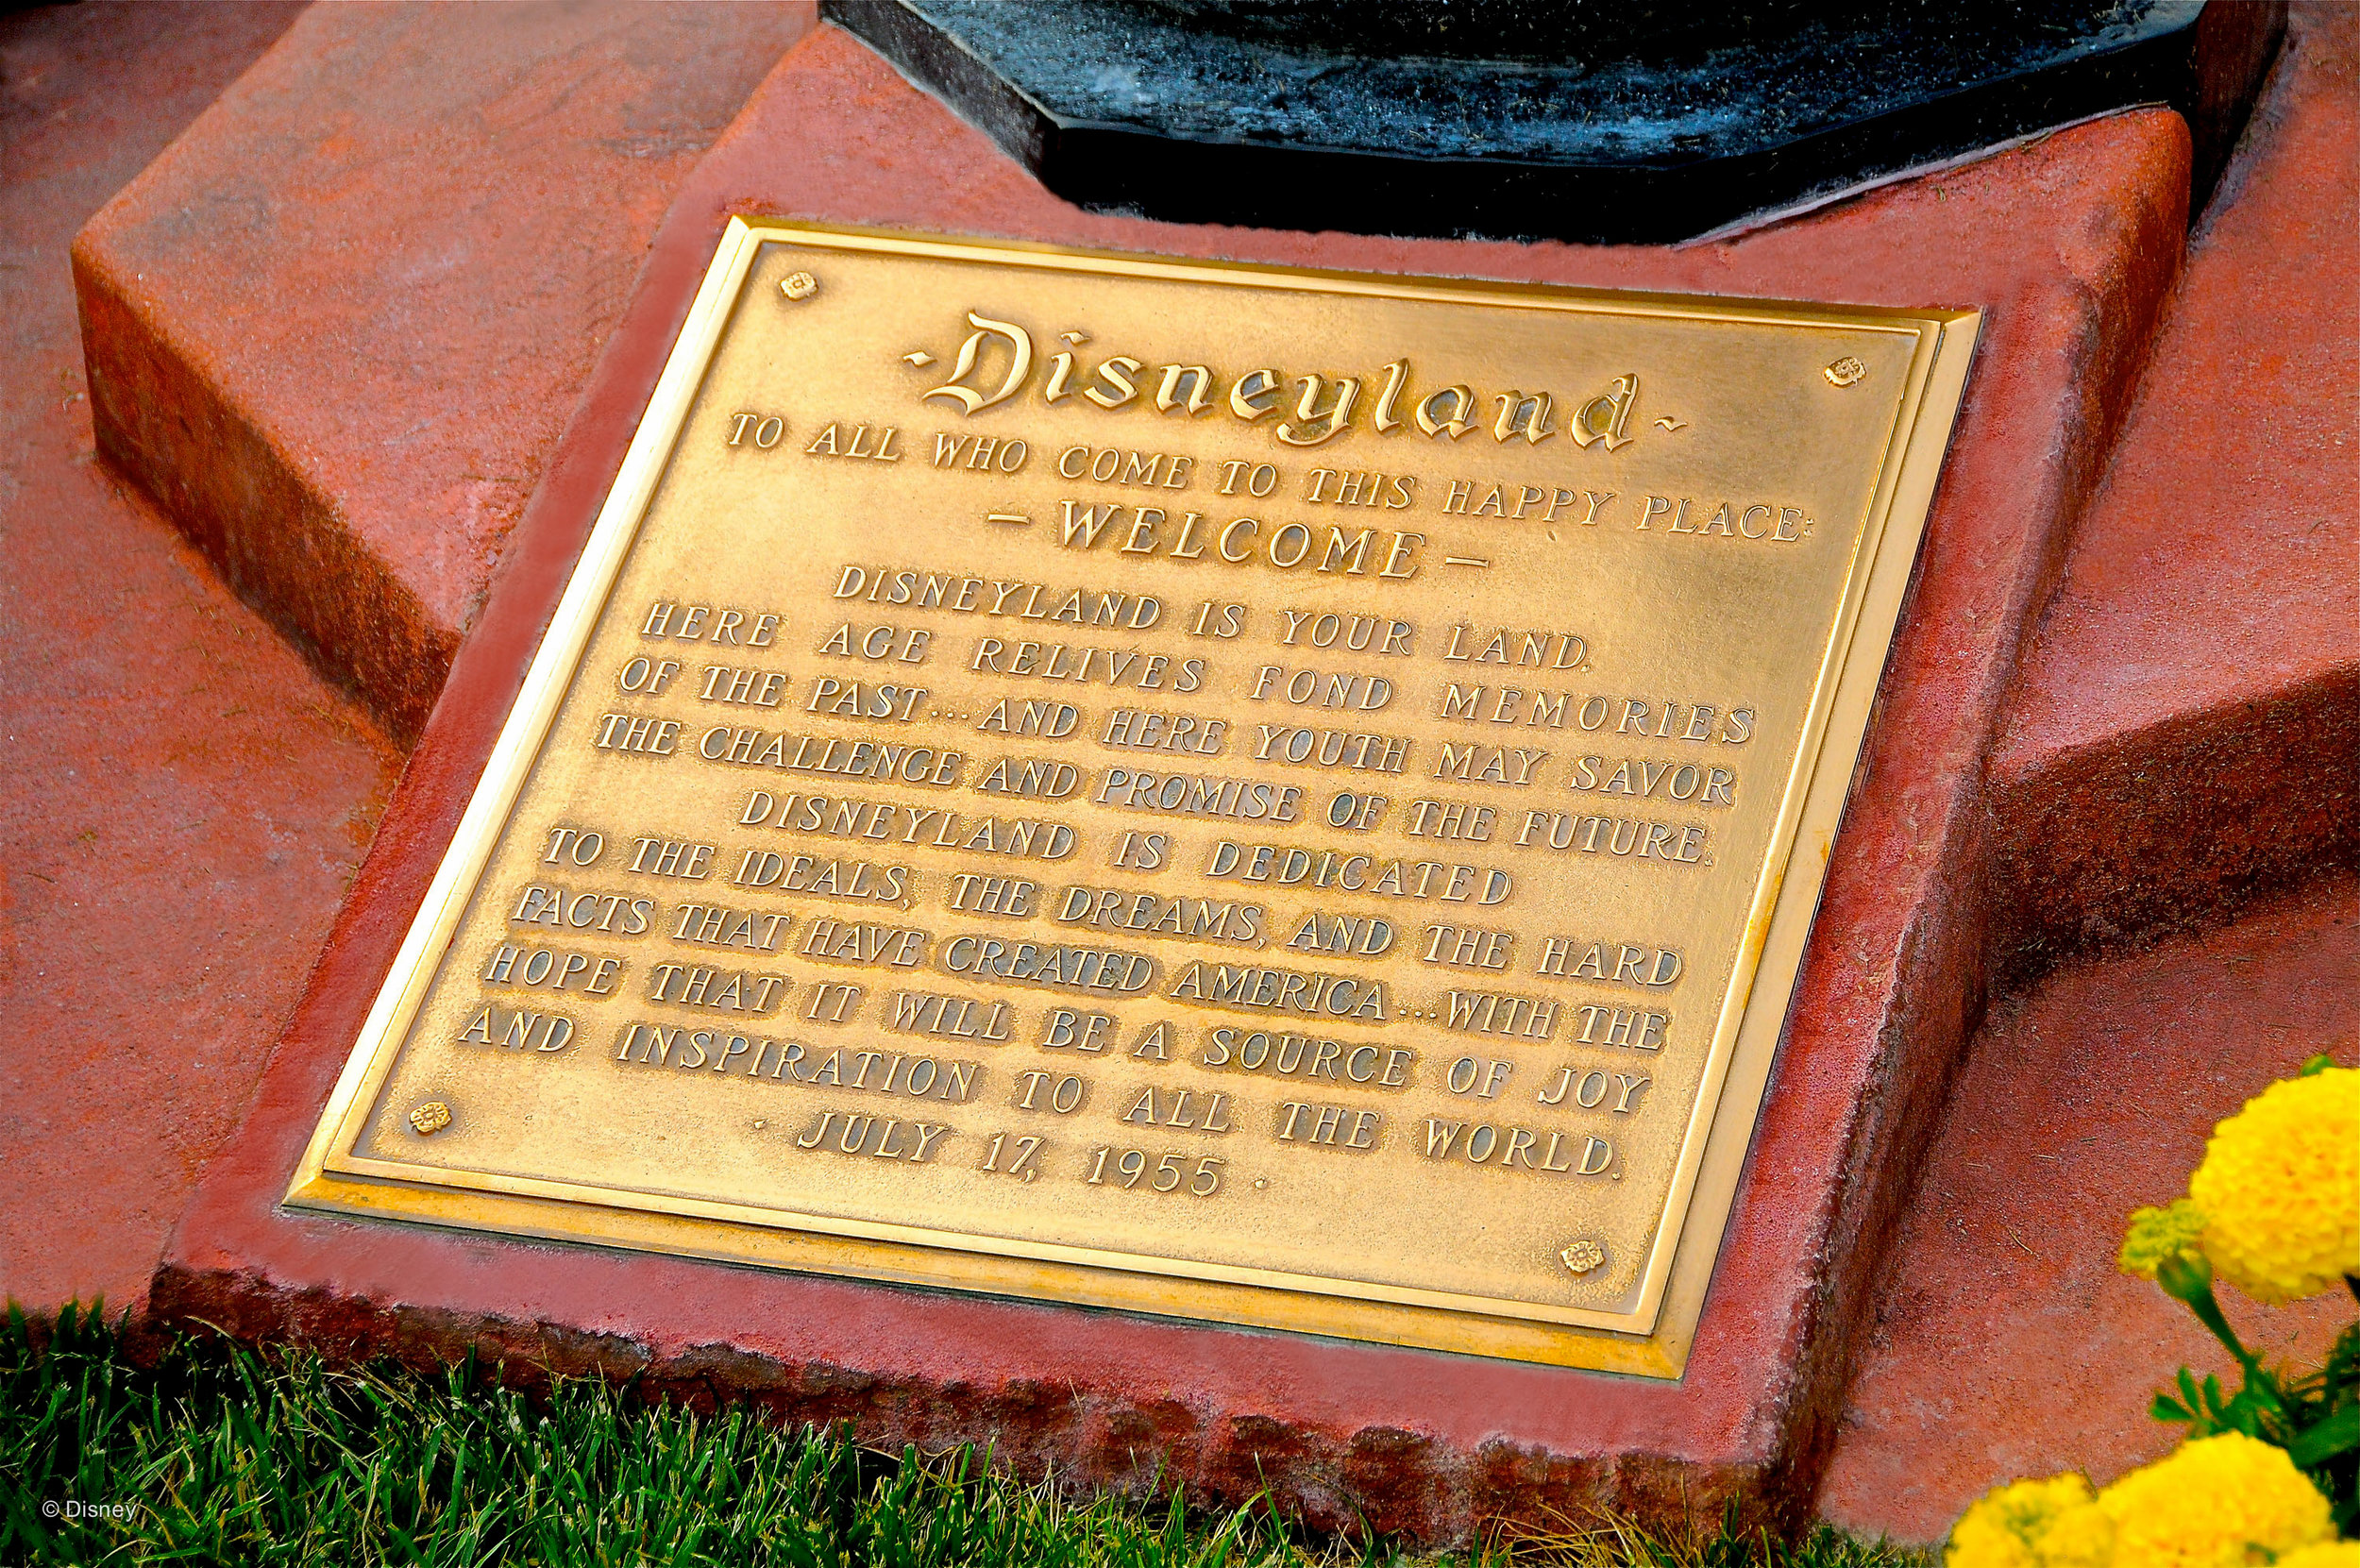 The Disneyland dedication plaque located at the flagpole on Main Street.